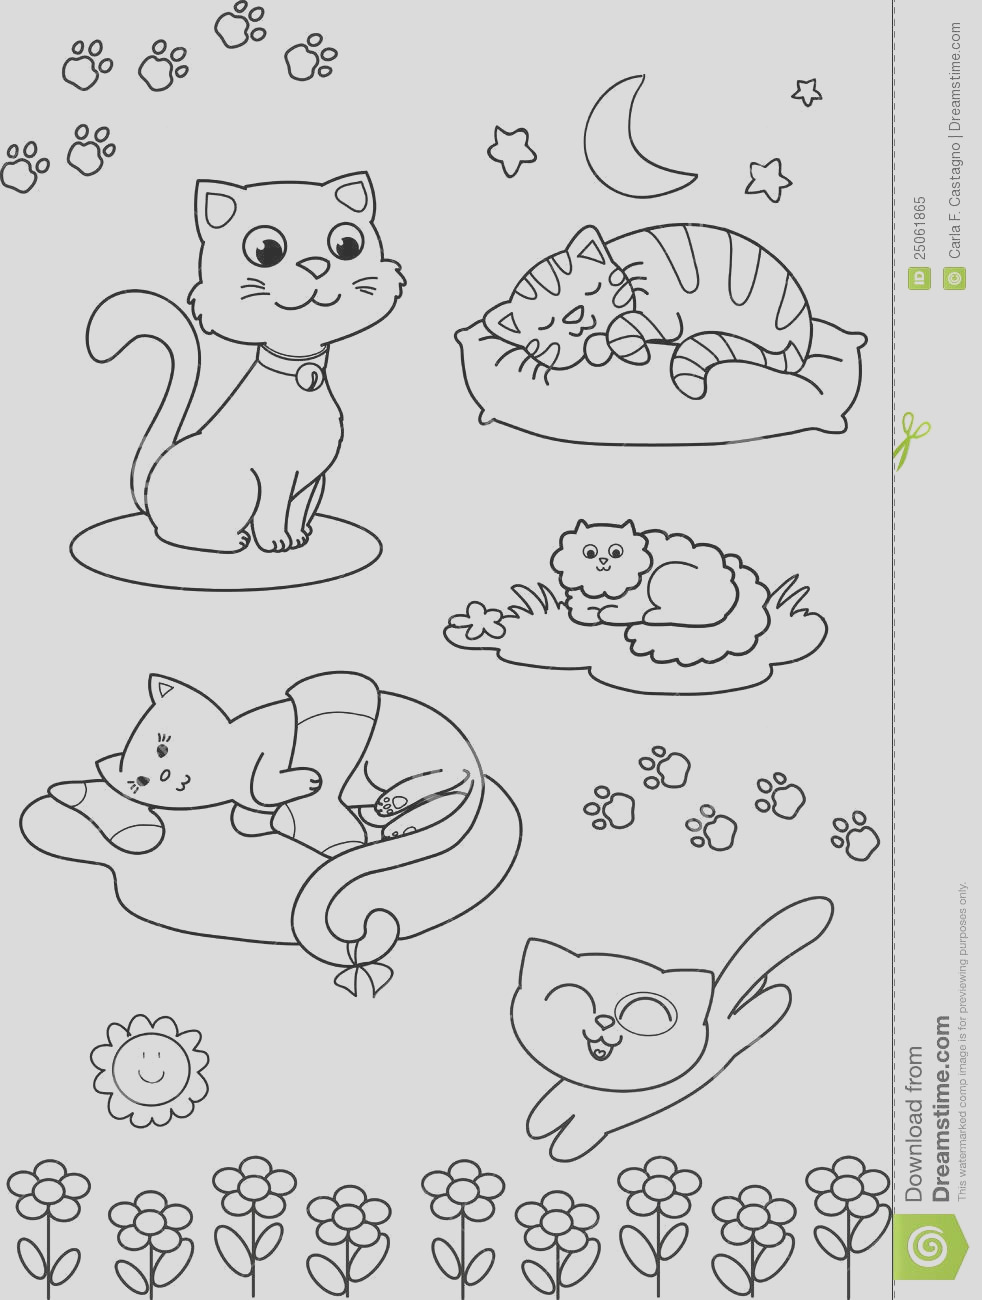 royalty free stock photo cute cartoon cats coloring page image